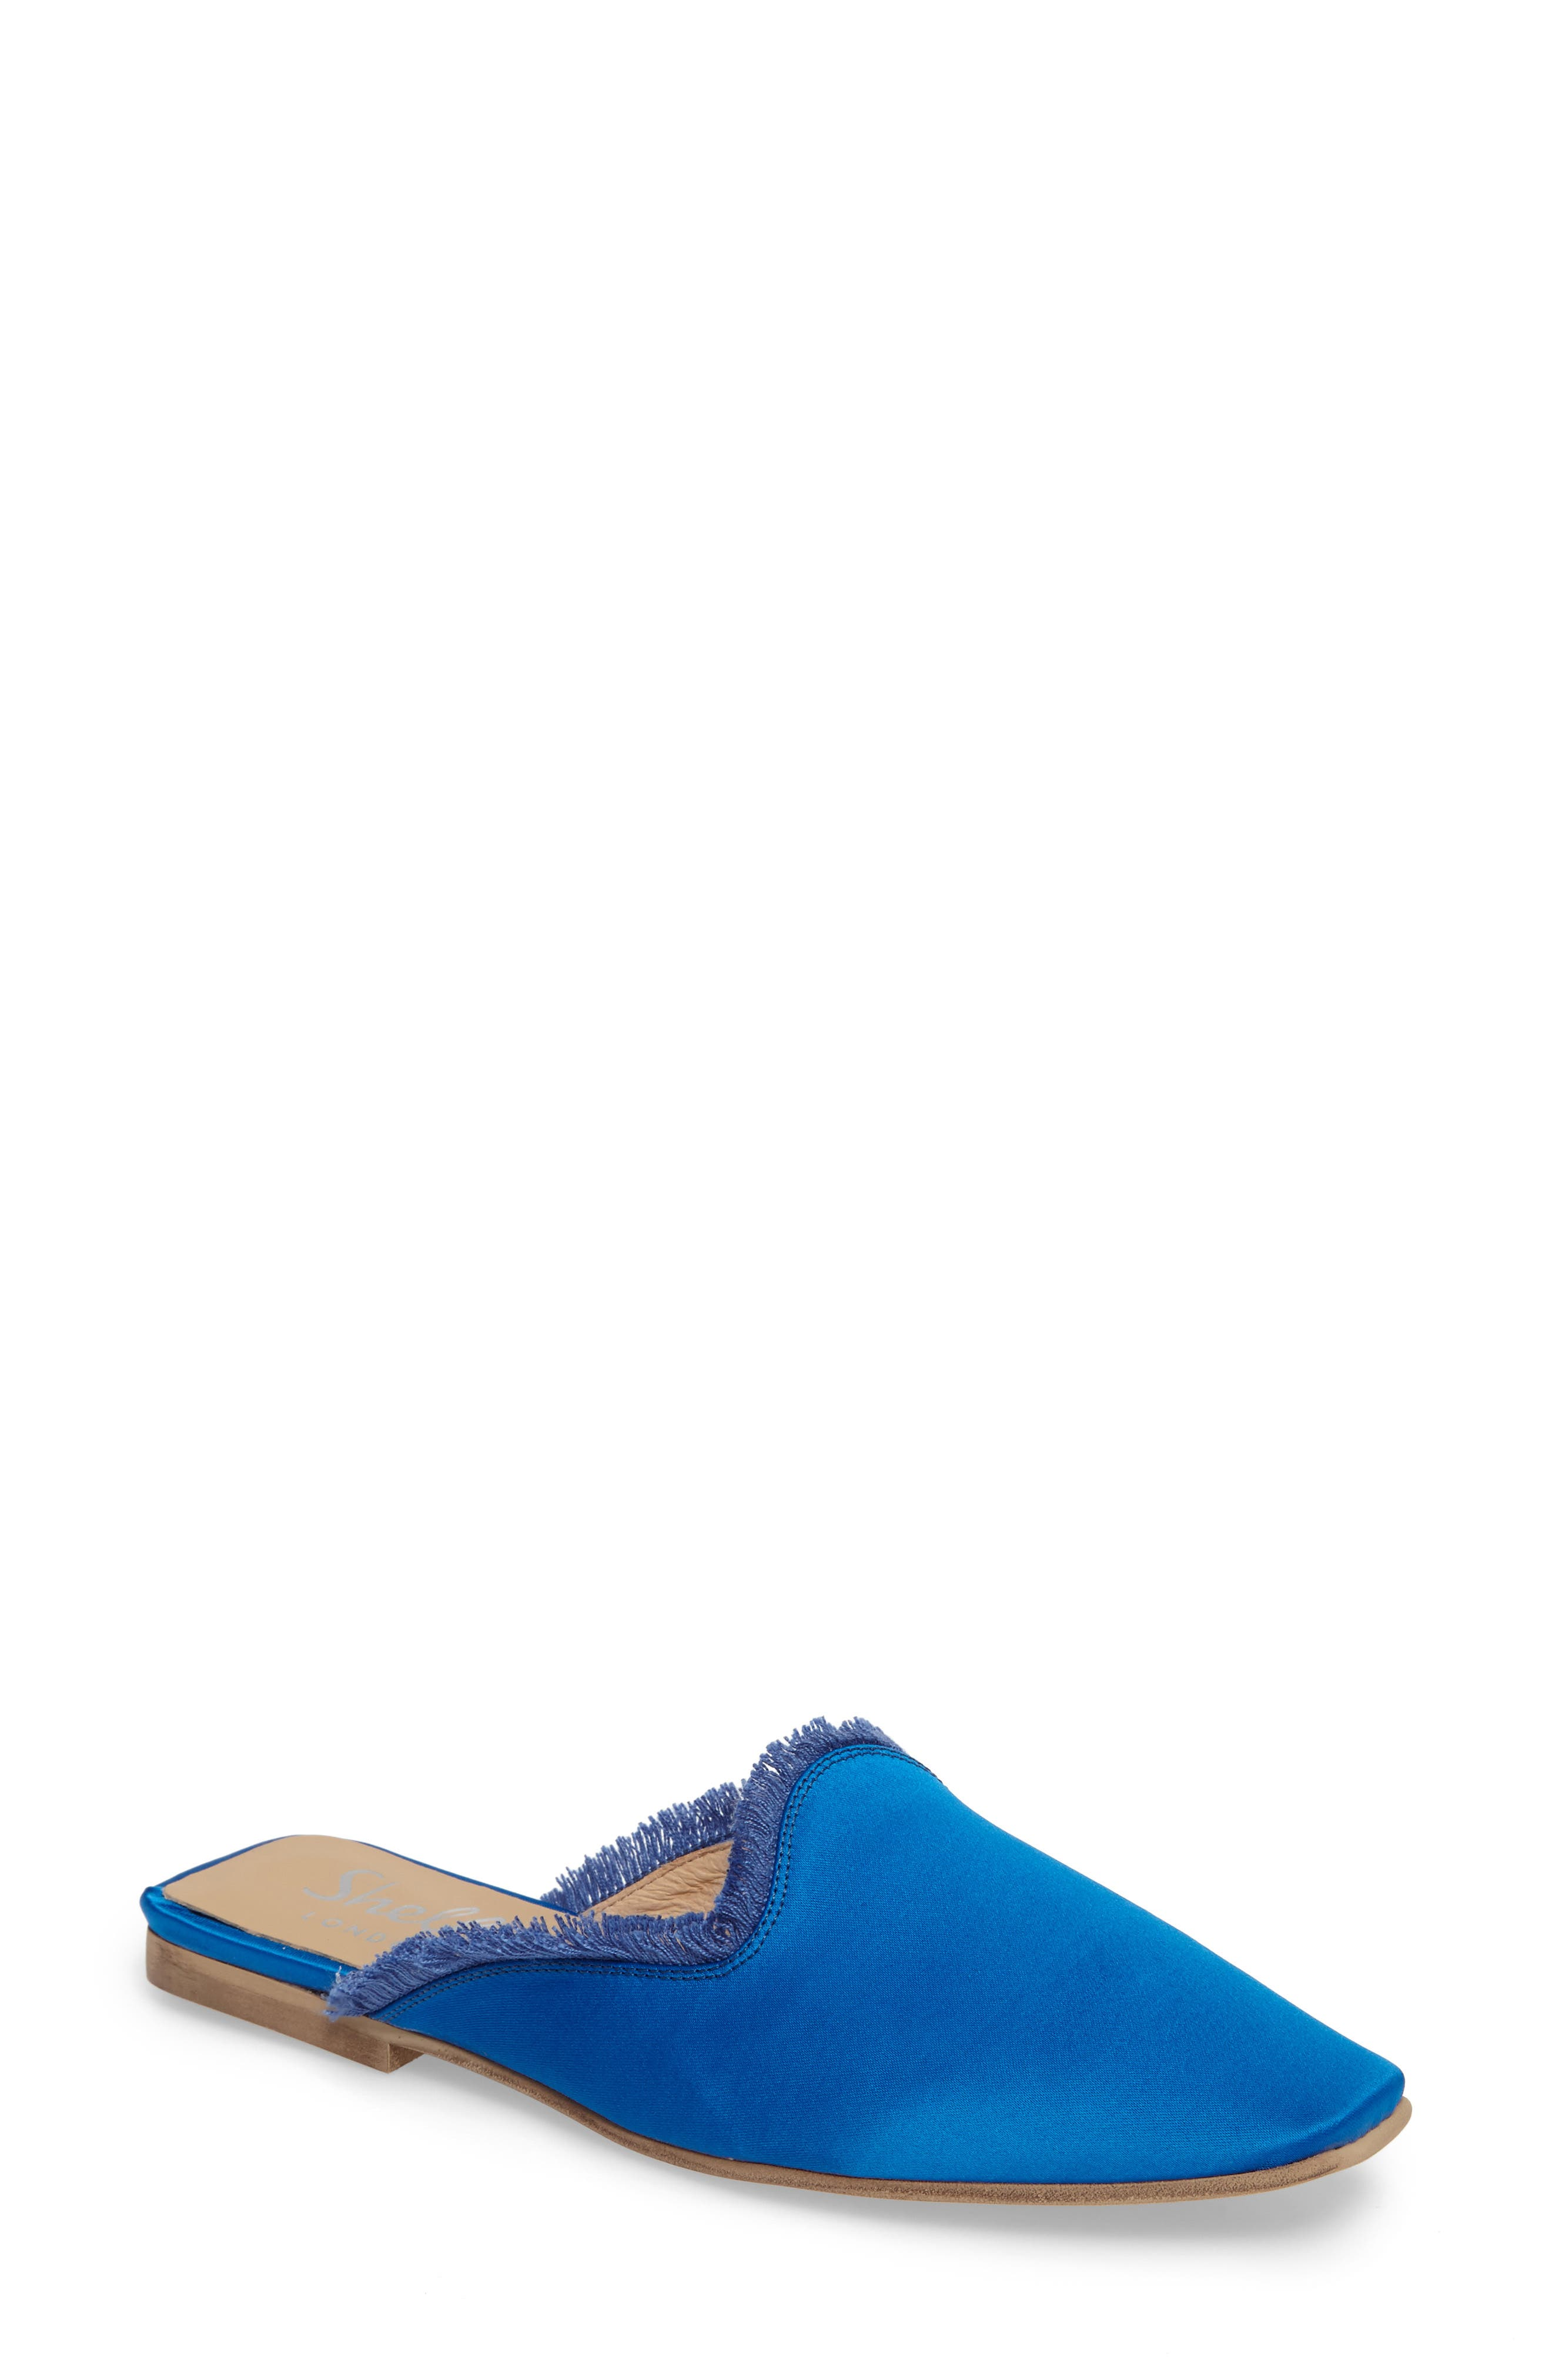 Kat Fringed Loafer Mule,                             Main thumbnail 3, color,